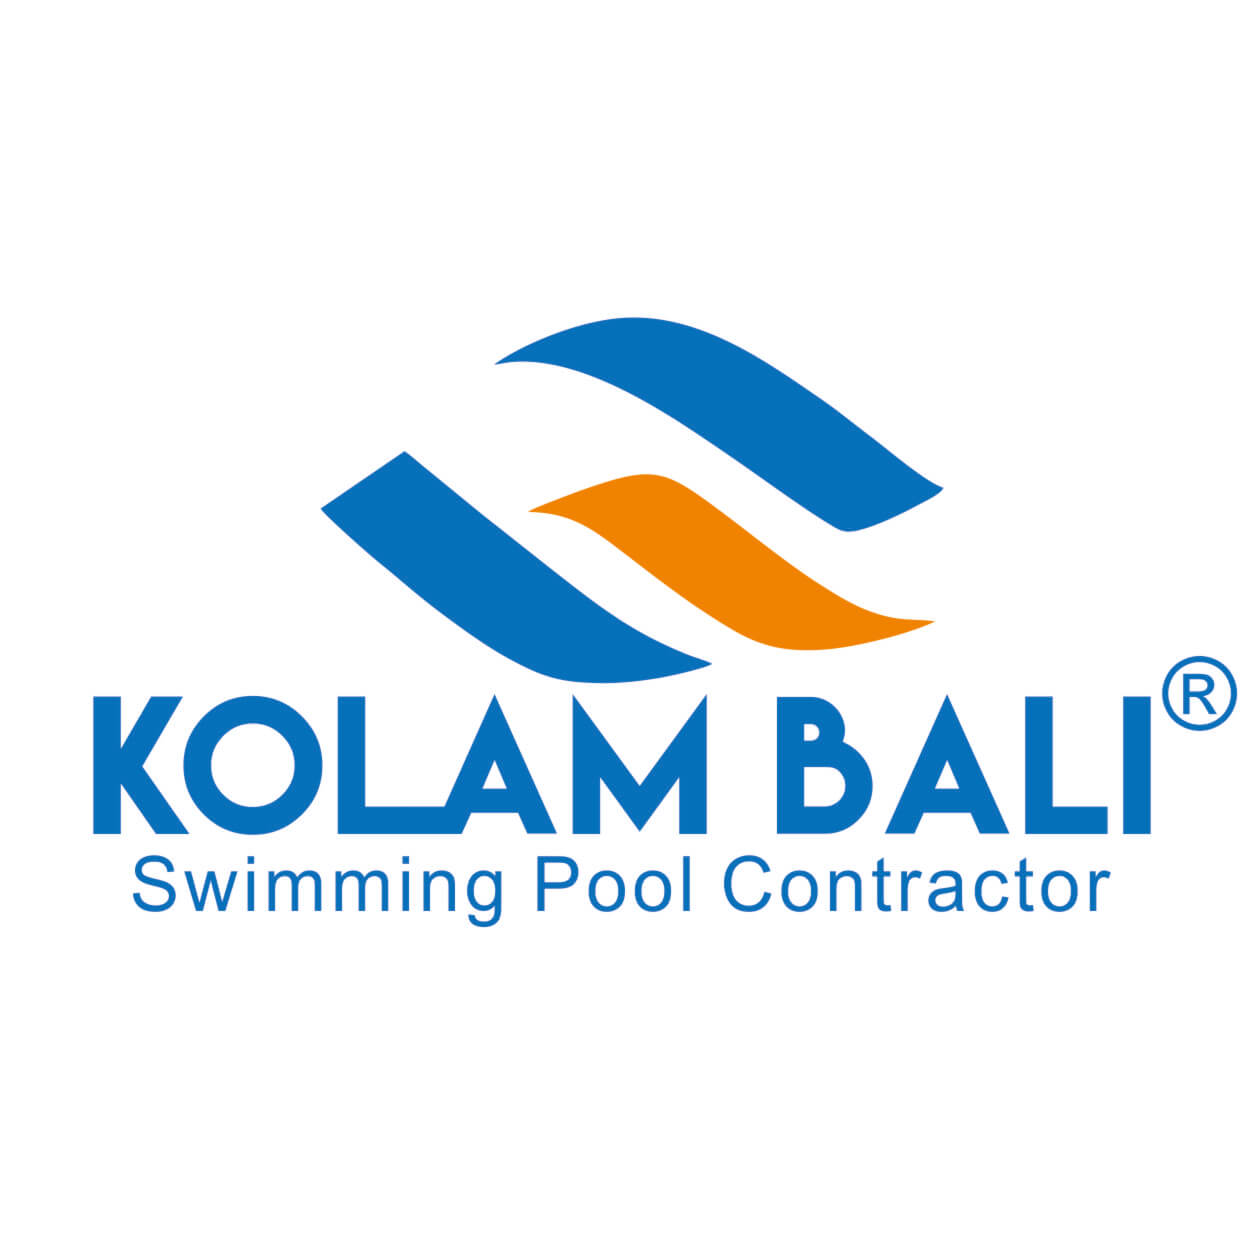 logo kolam bali swimming pool contractor